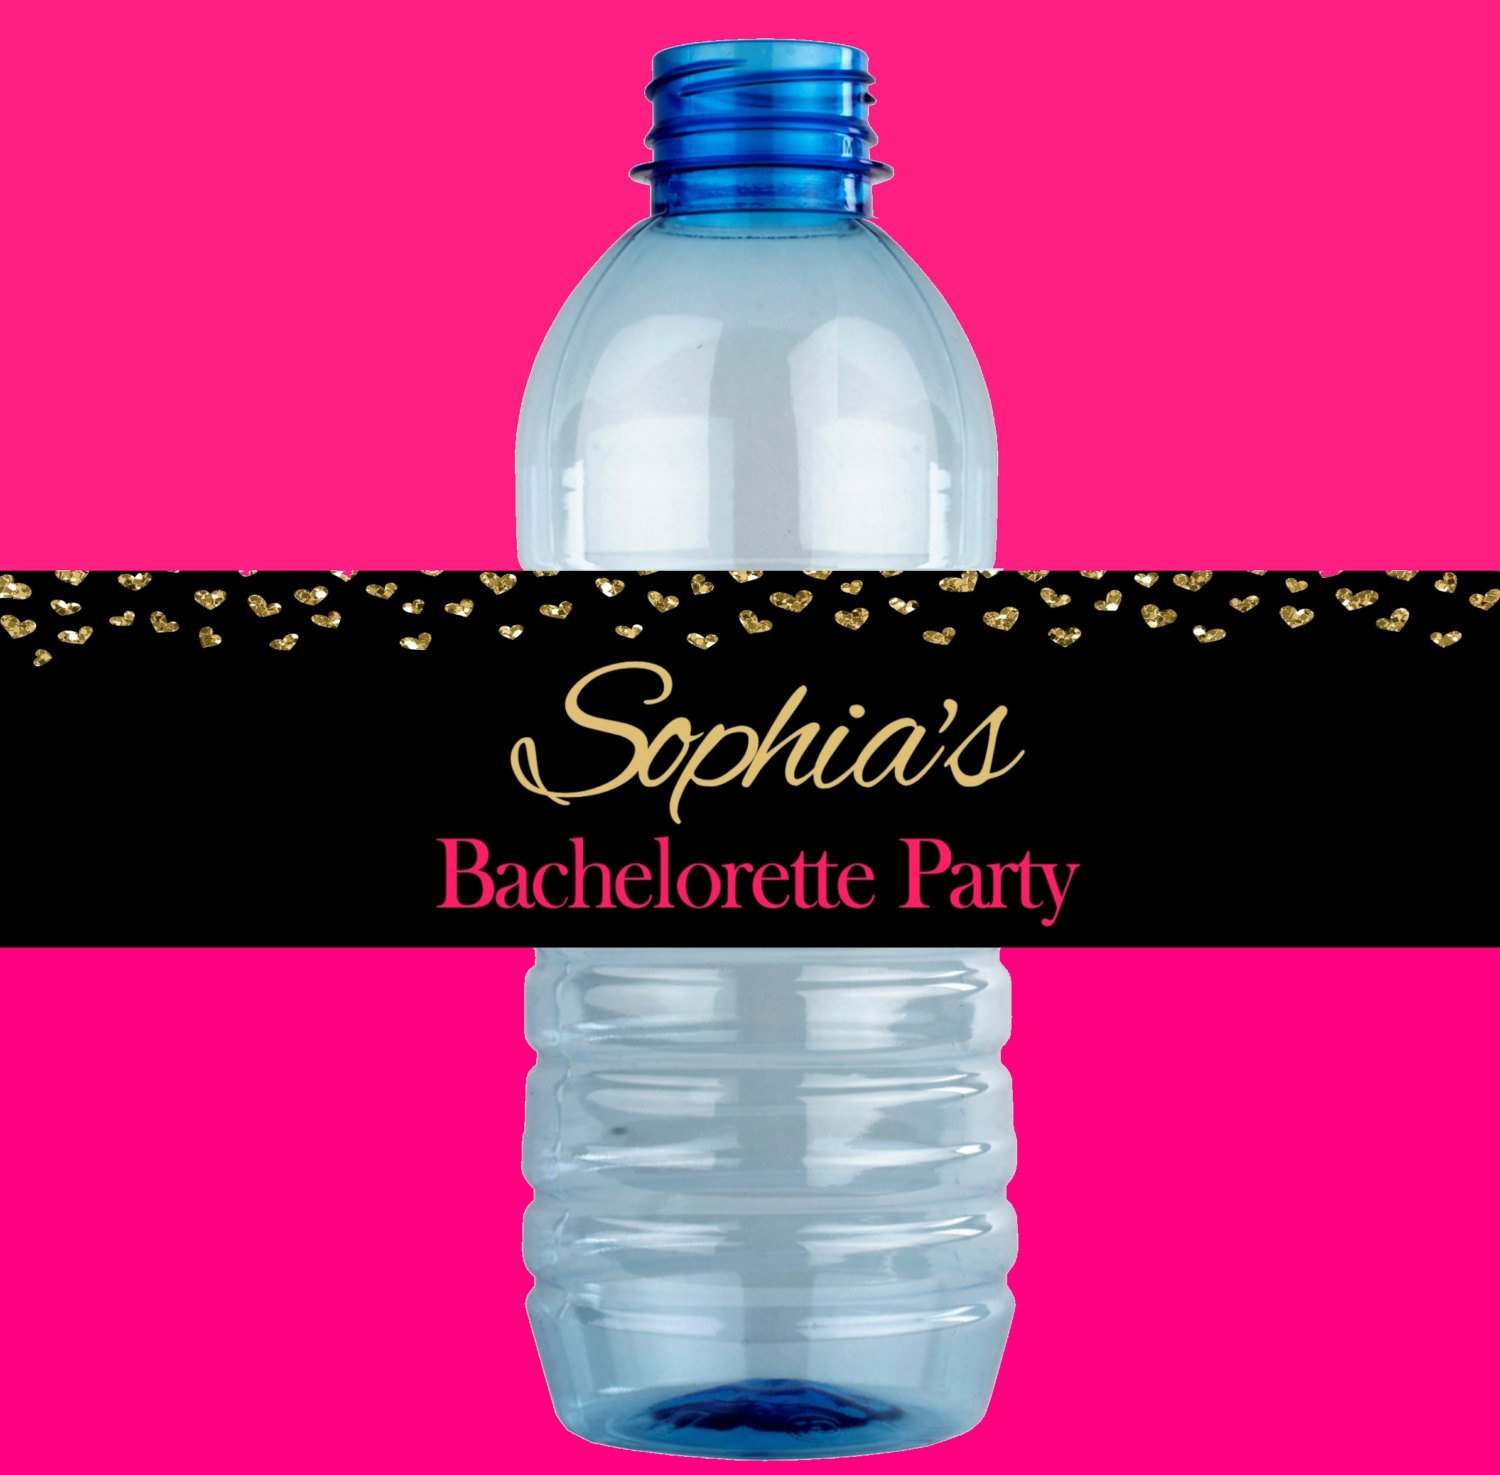 Bachelorette Party Water Bottle Labels Printable | Etsy - Free Printable Water Bottle Labels Bachelorette